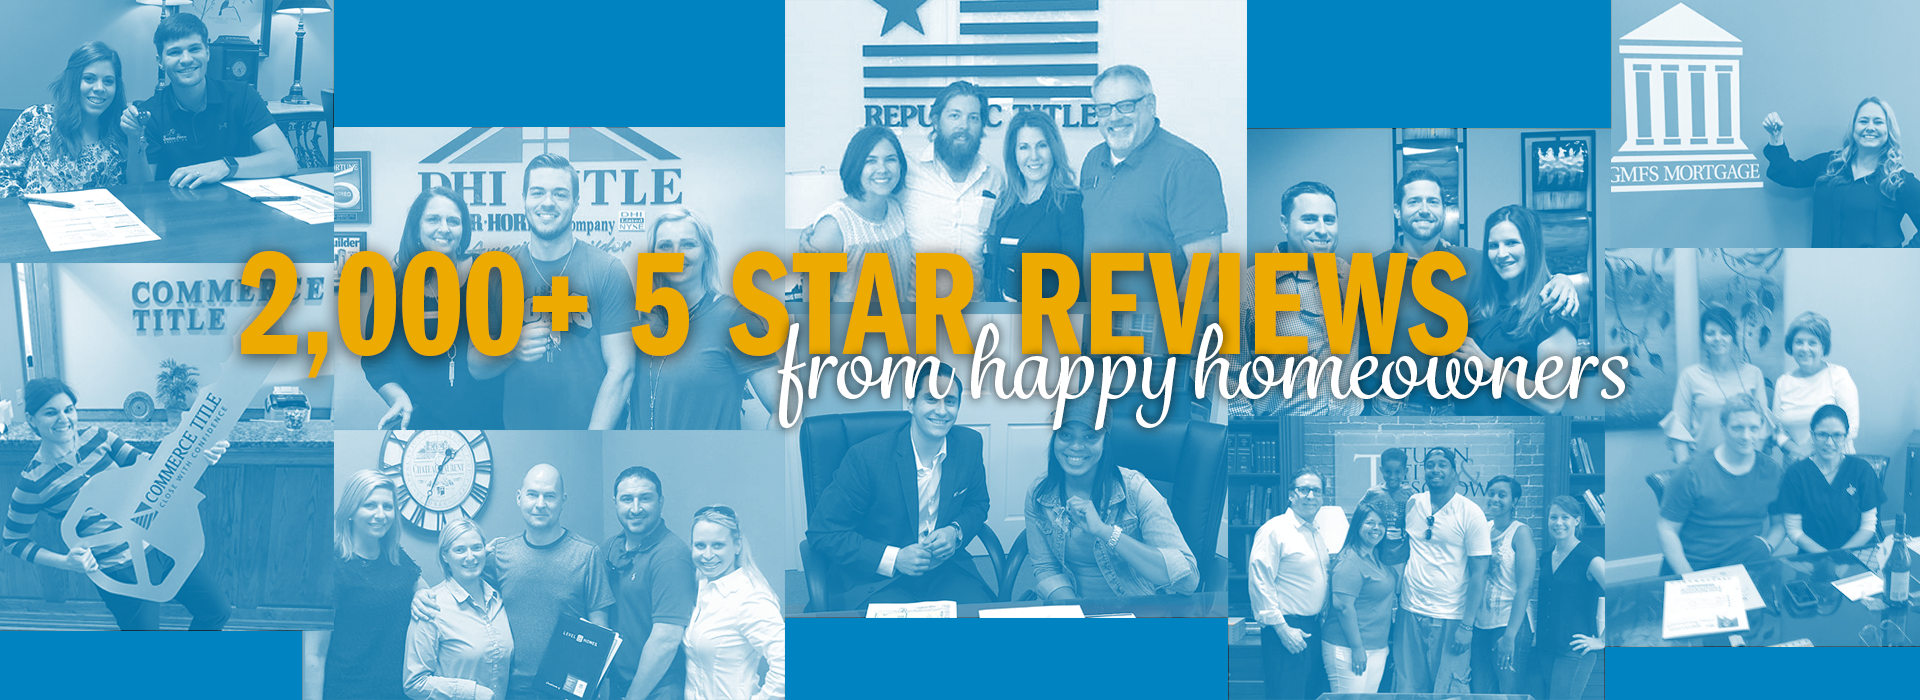 GMFS Mortgage Rated 5 Stars by Customers